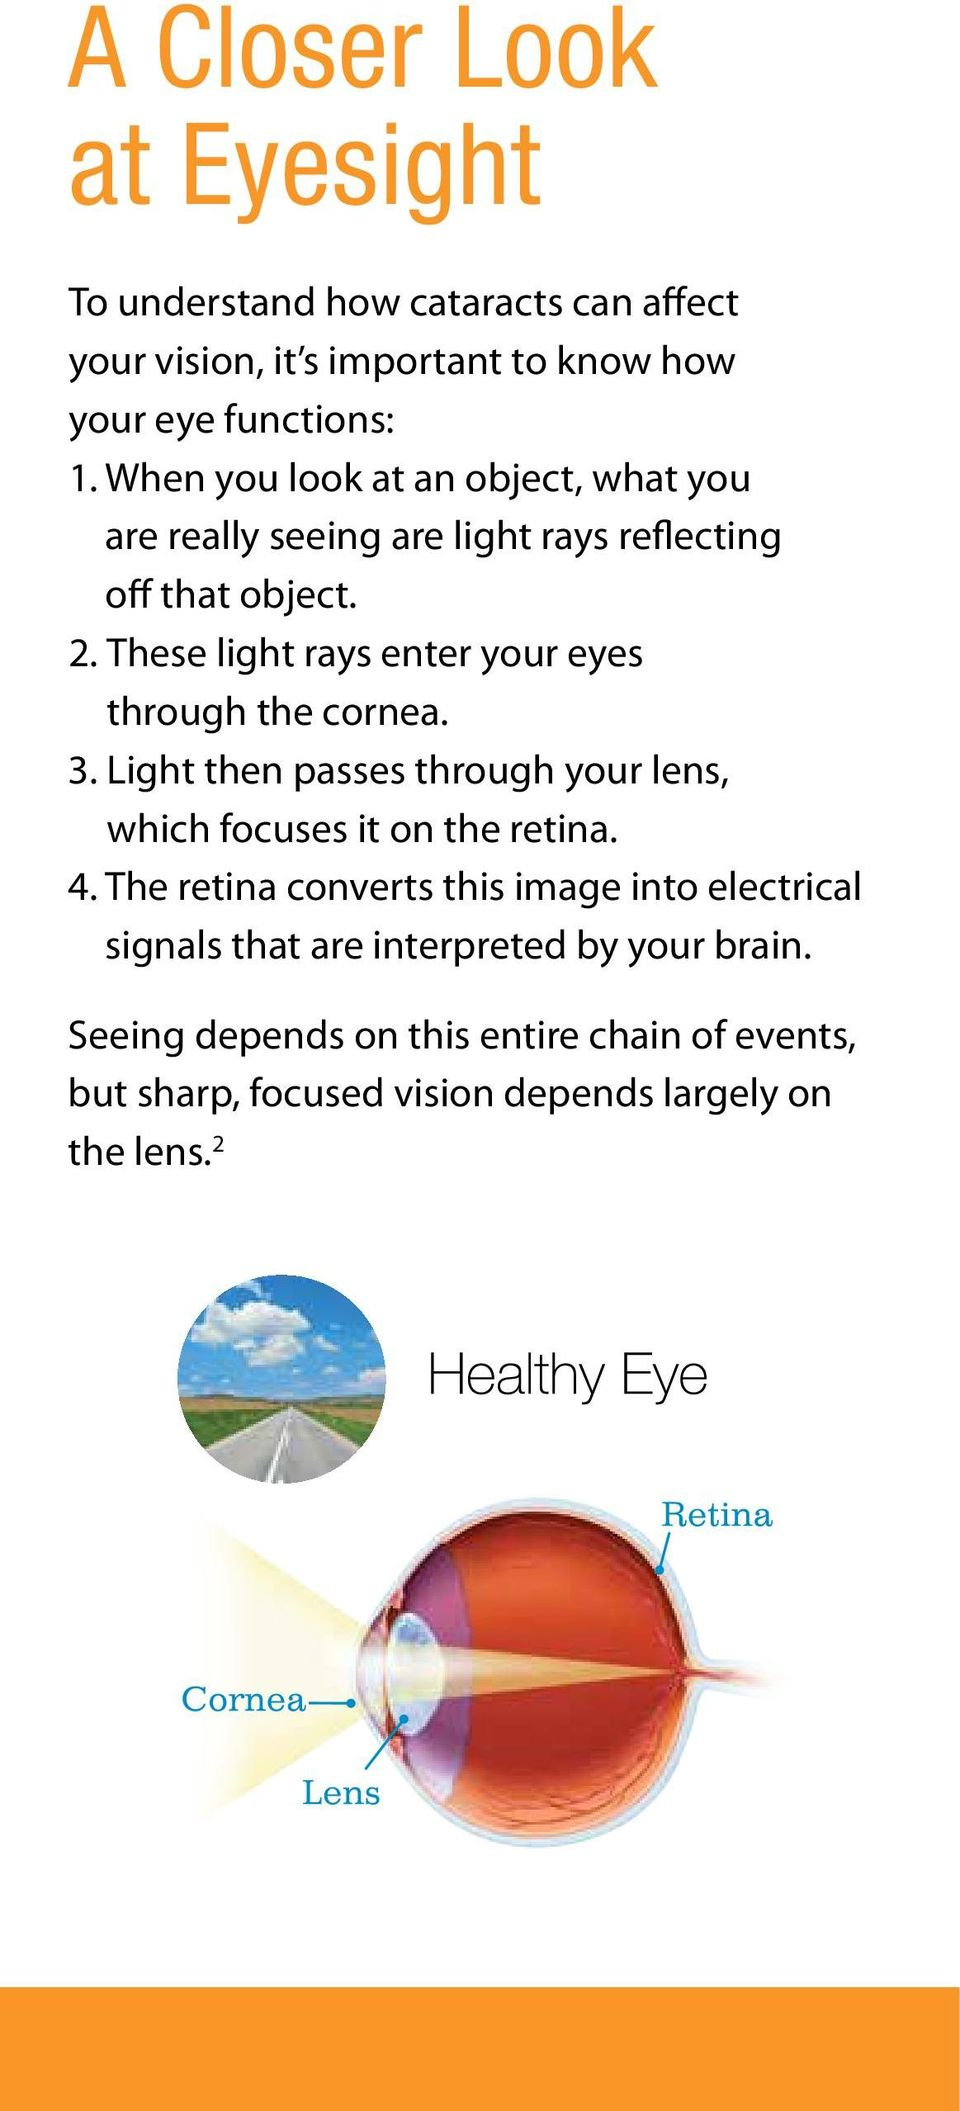 These light rays enter your eyes through the cornea. 3. Light then passes through your lens, which focuses it on the retina. 4.